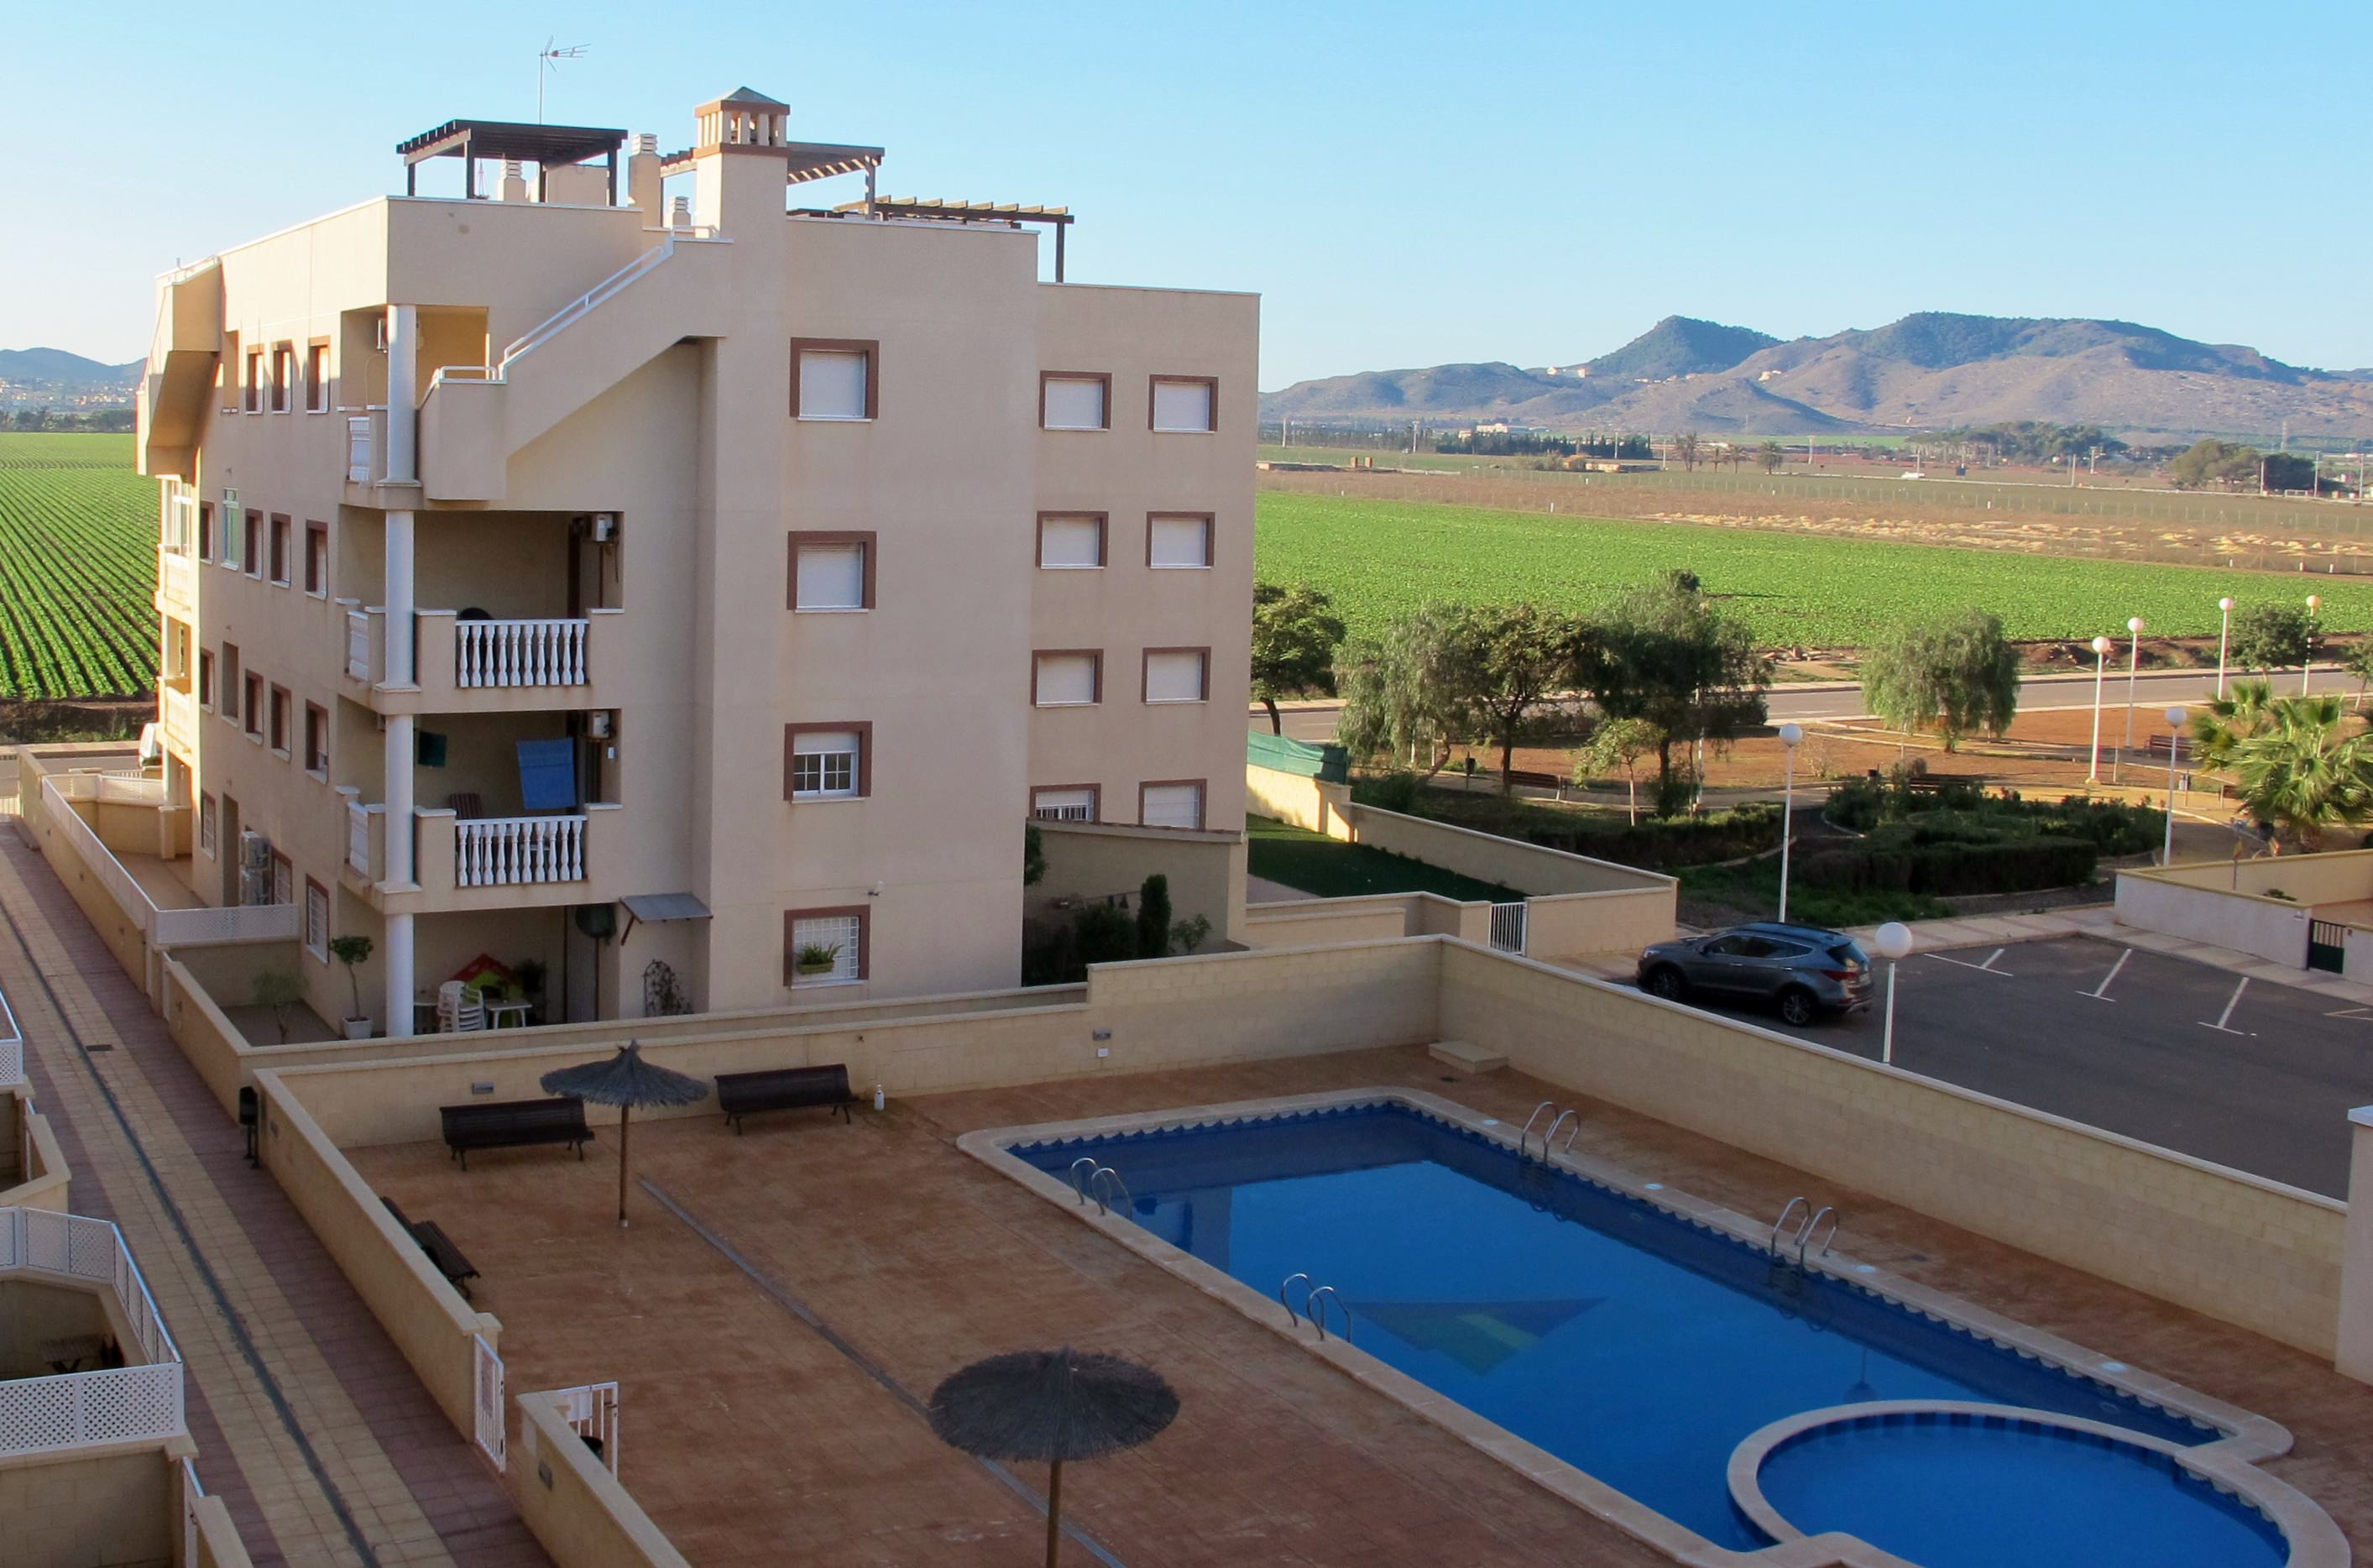 Ref:MAR-01 Apartment For Sale in Mar De Cristal